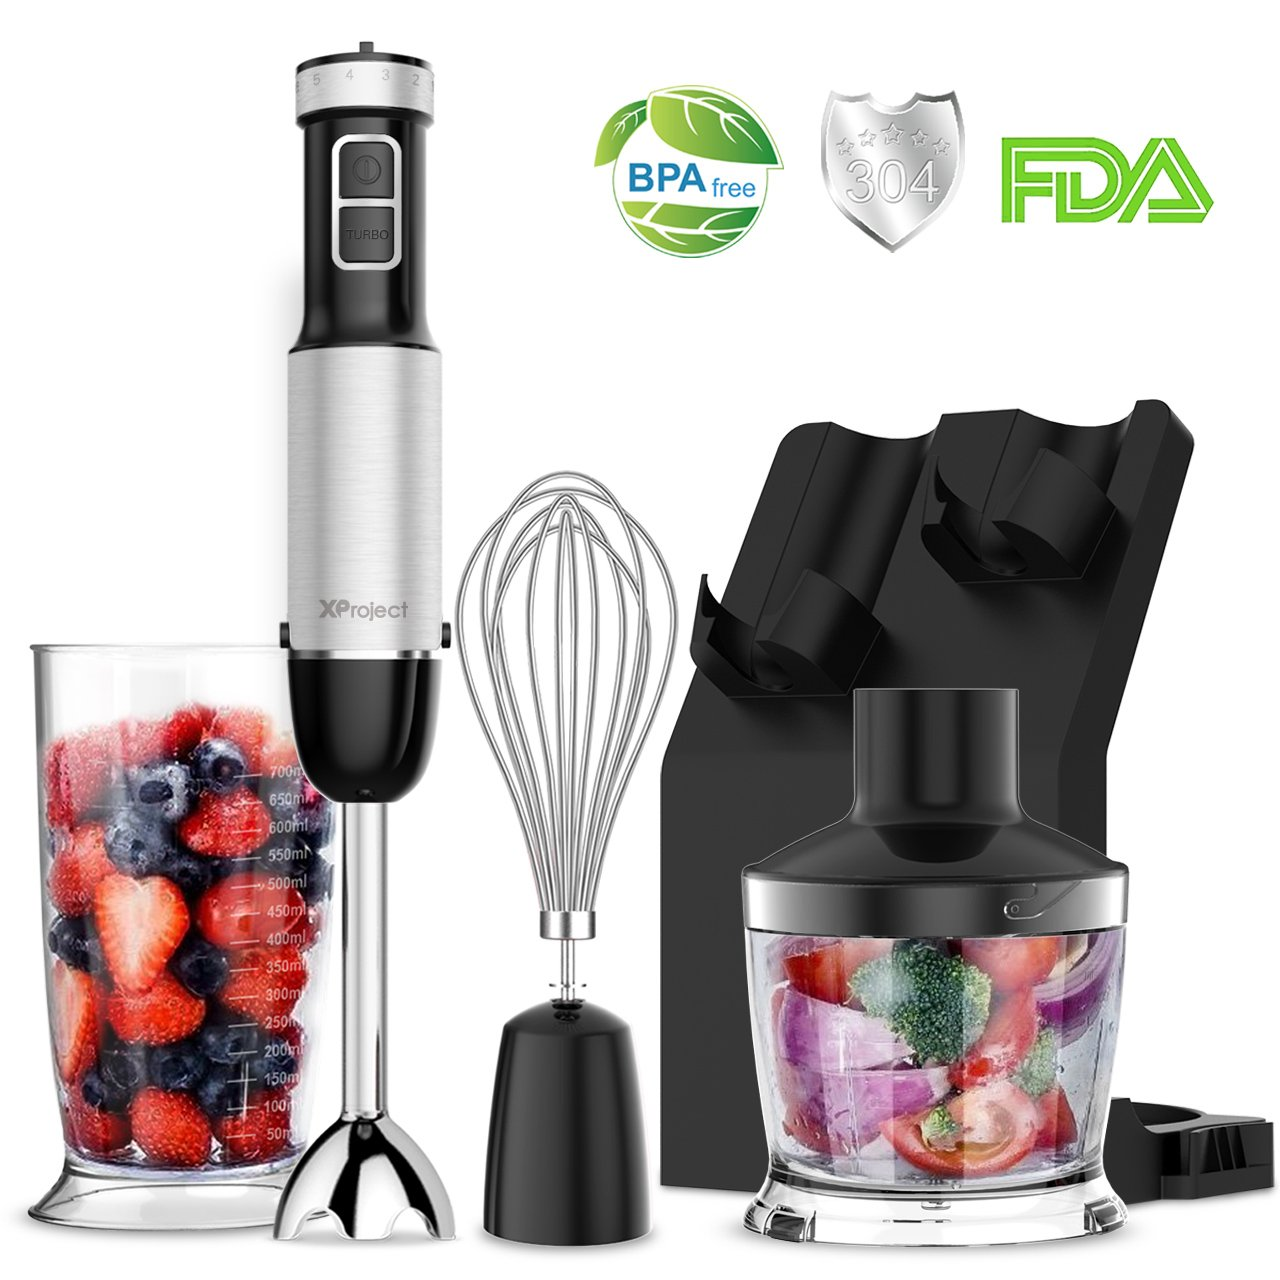 XProject (Upgraded) Immersion Blender,Powerful 800W 4 in 1 Hand Blender with 6 Speed Control & Turbo,500ml Chopper,Whisk,700ML Beaker for Smoothie,Bonus Storage Stand,BPA Free,FDA Approved